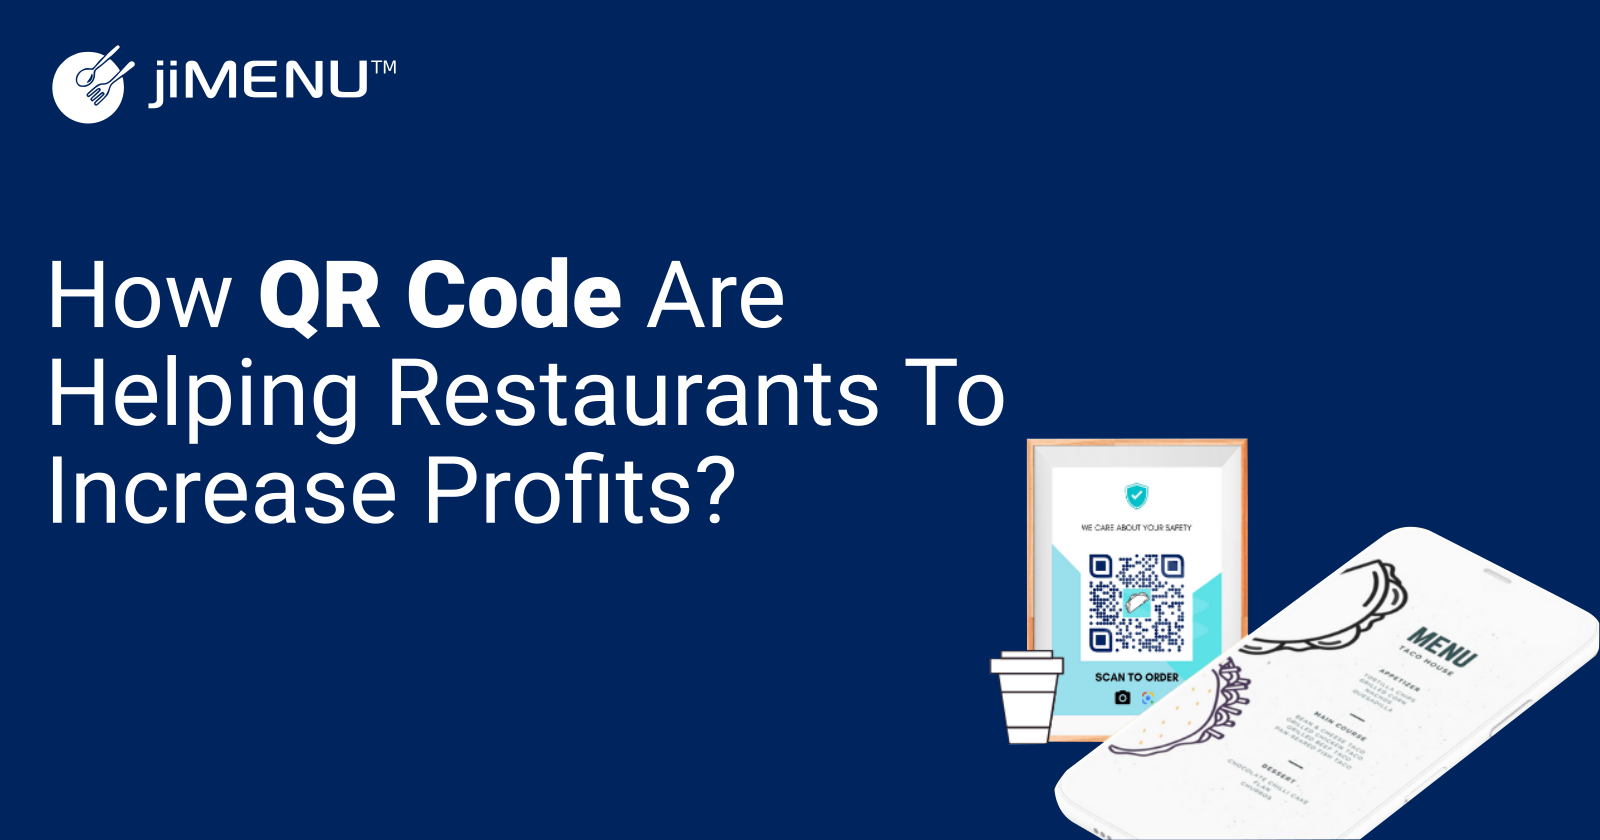 How QR Code Are Helping Restaurants to Increase Profits?